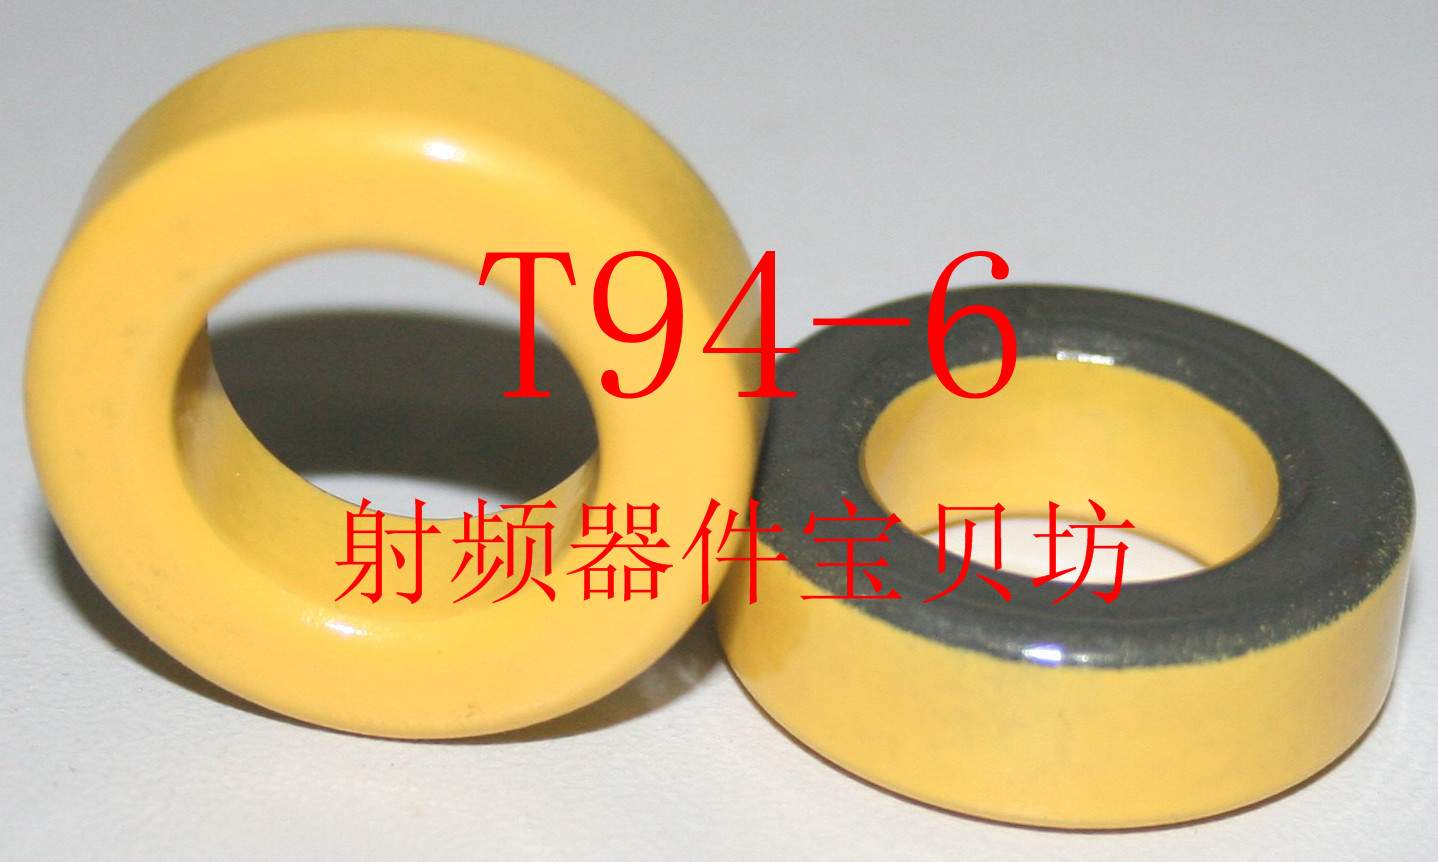 T94-6 RF Iron Powder Toroidal T94-6